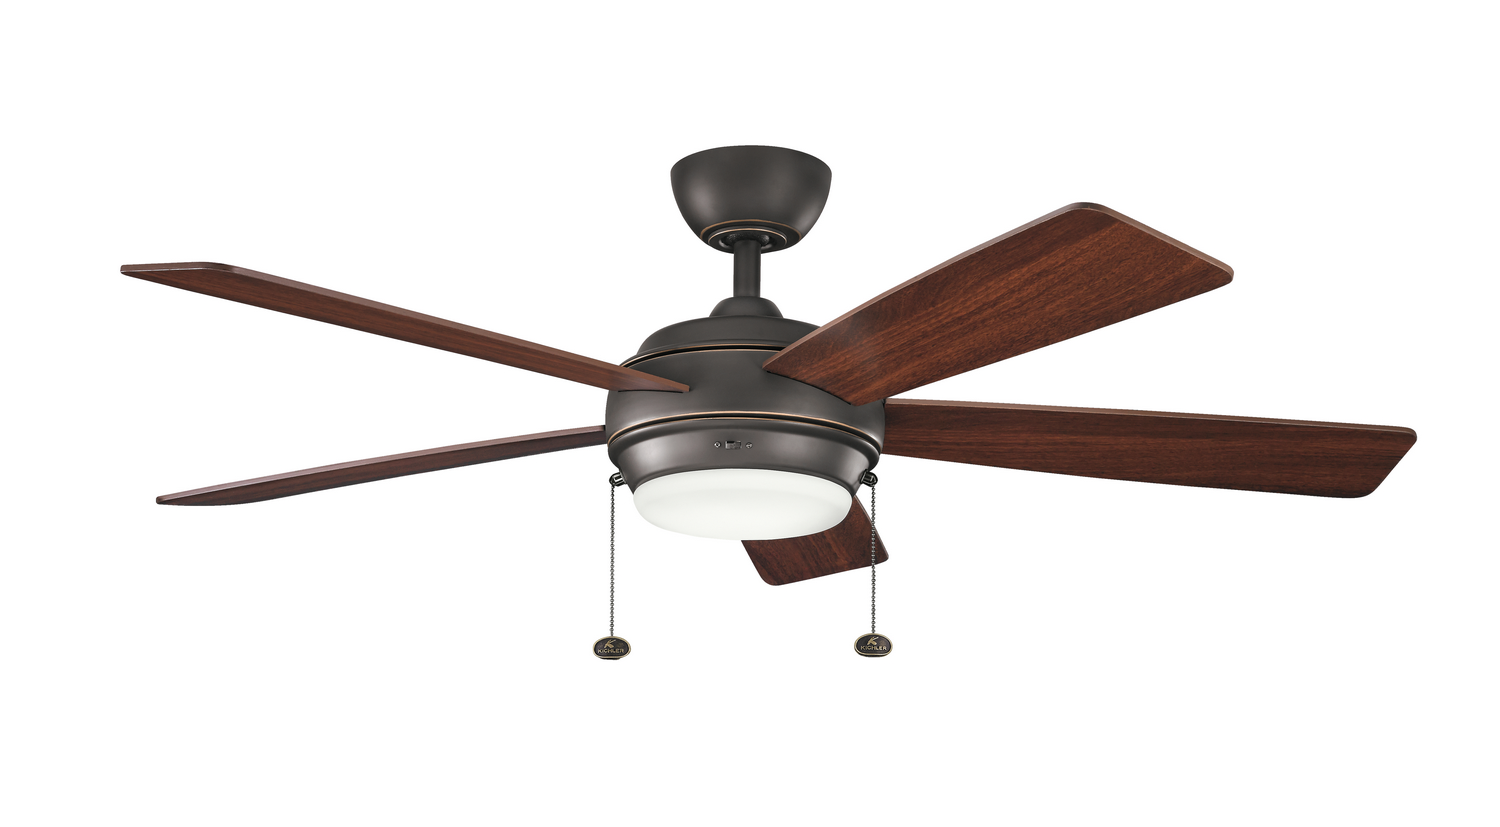 52 inchCeiling Fan from the Starkk collection by Kichler 300173OZ